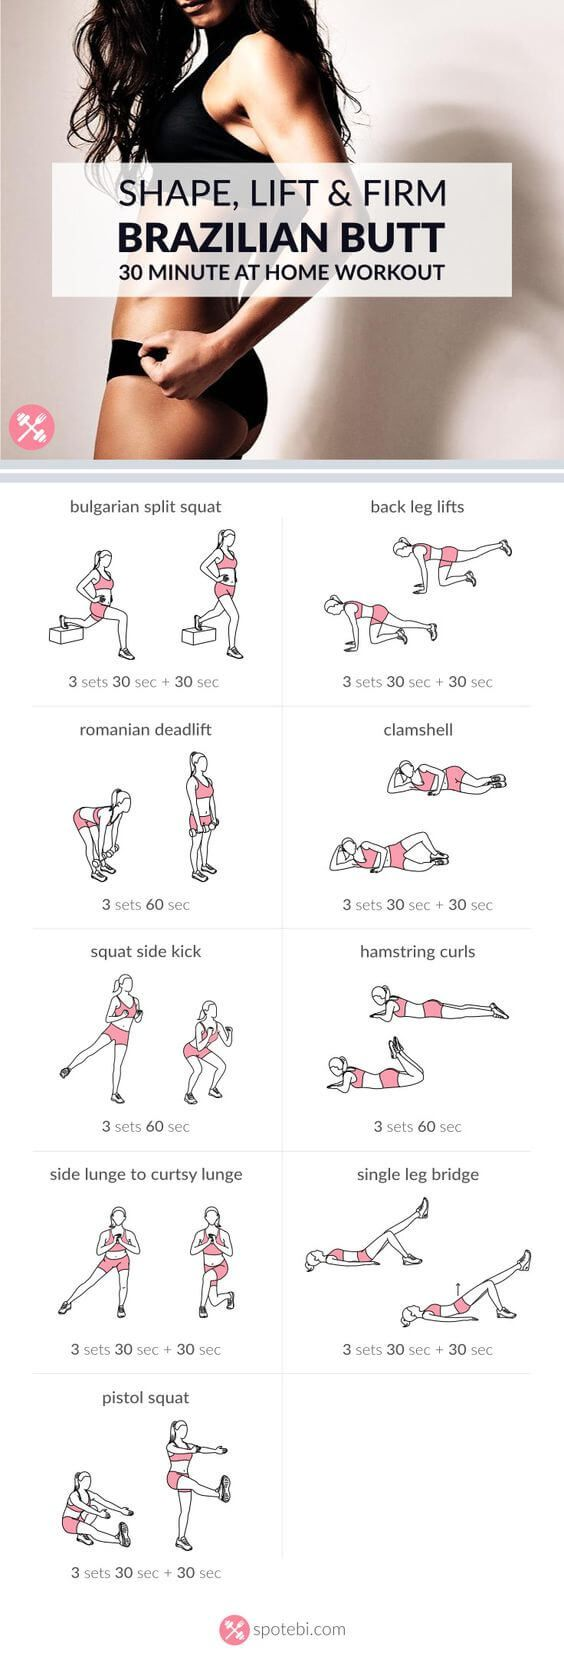 Brazilian butt workout